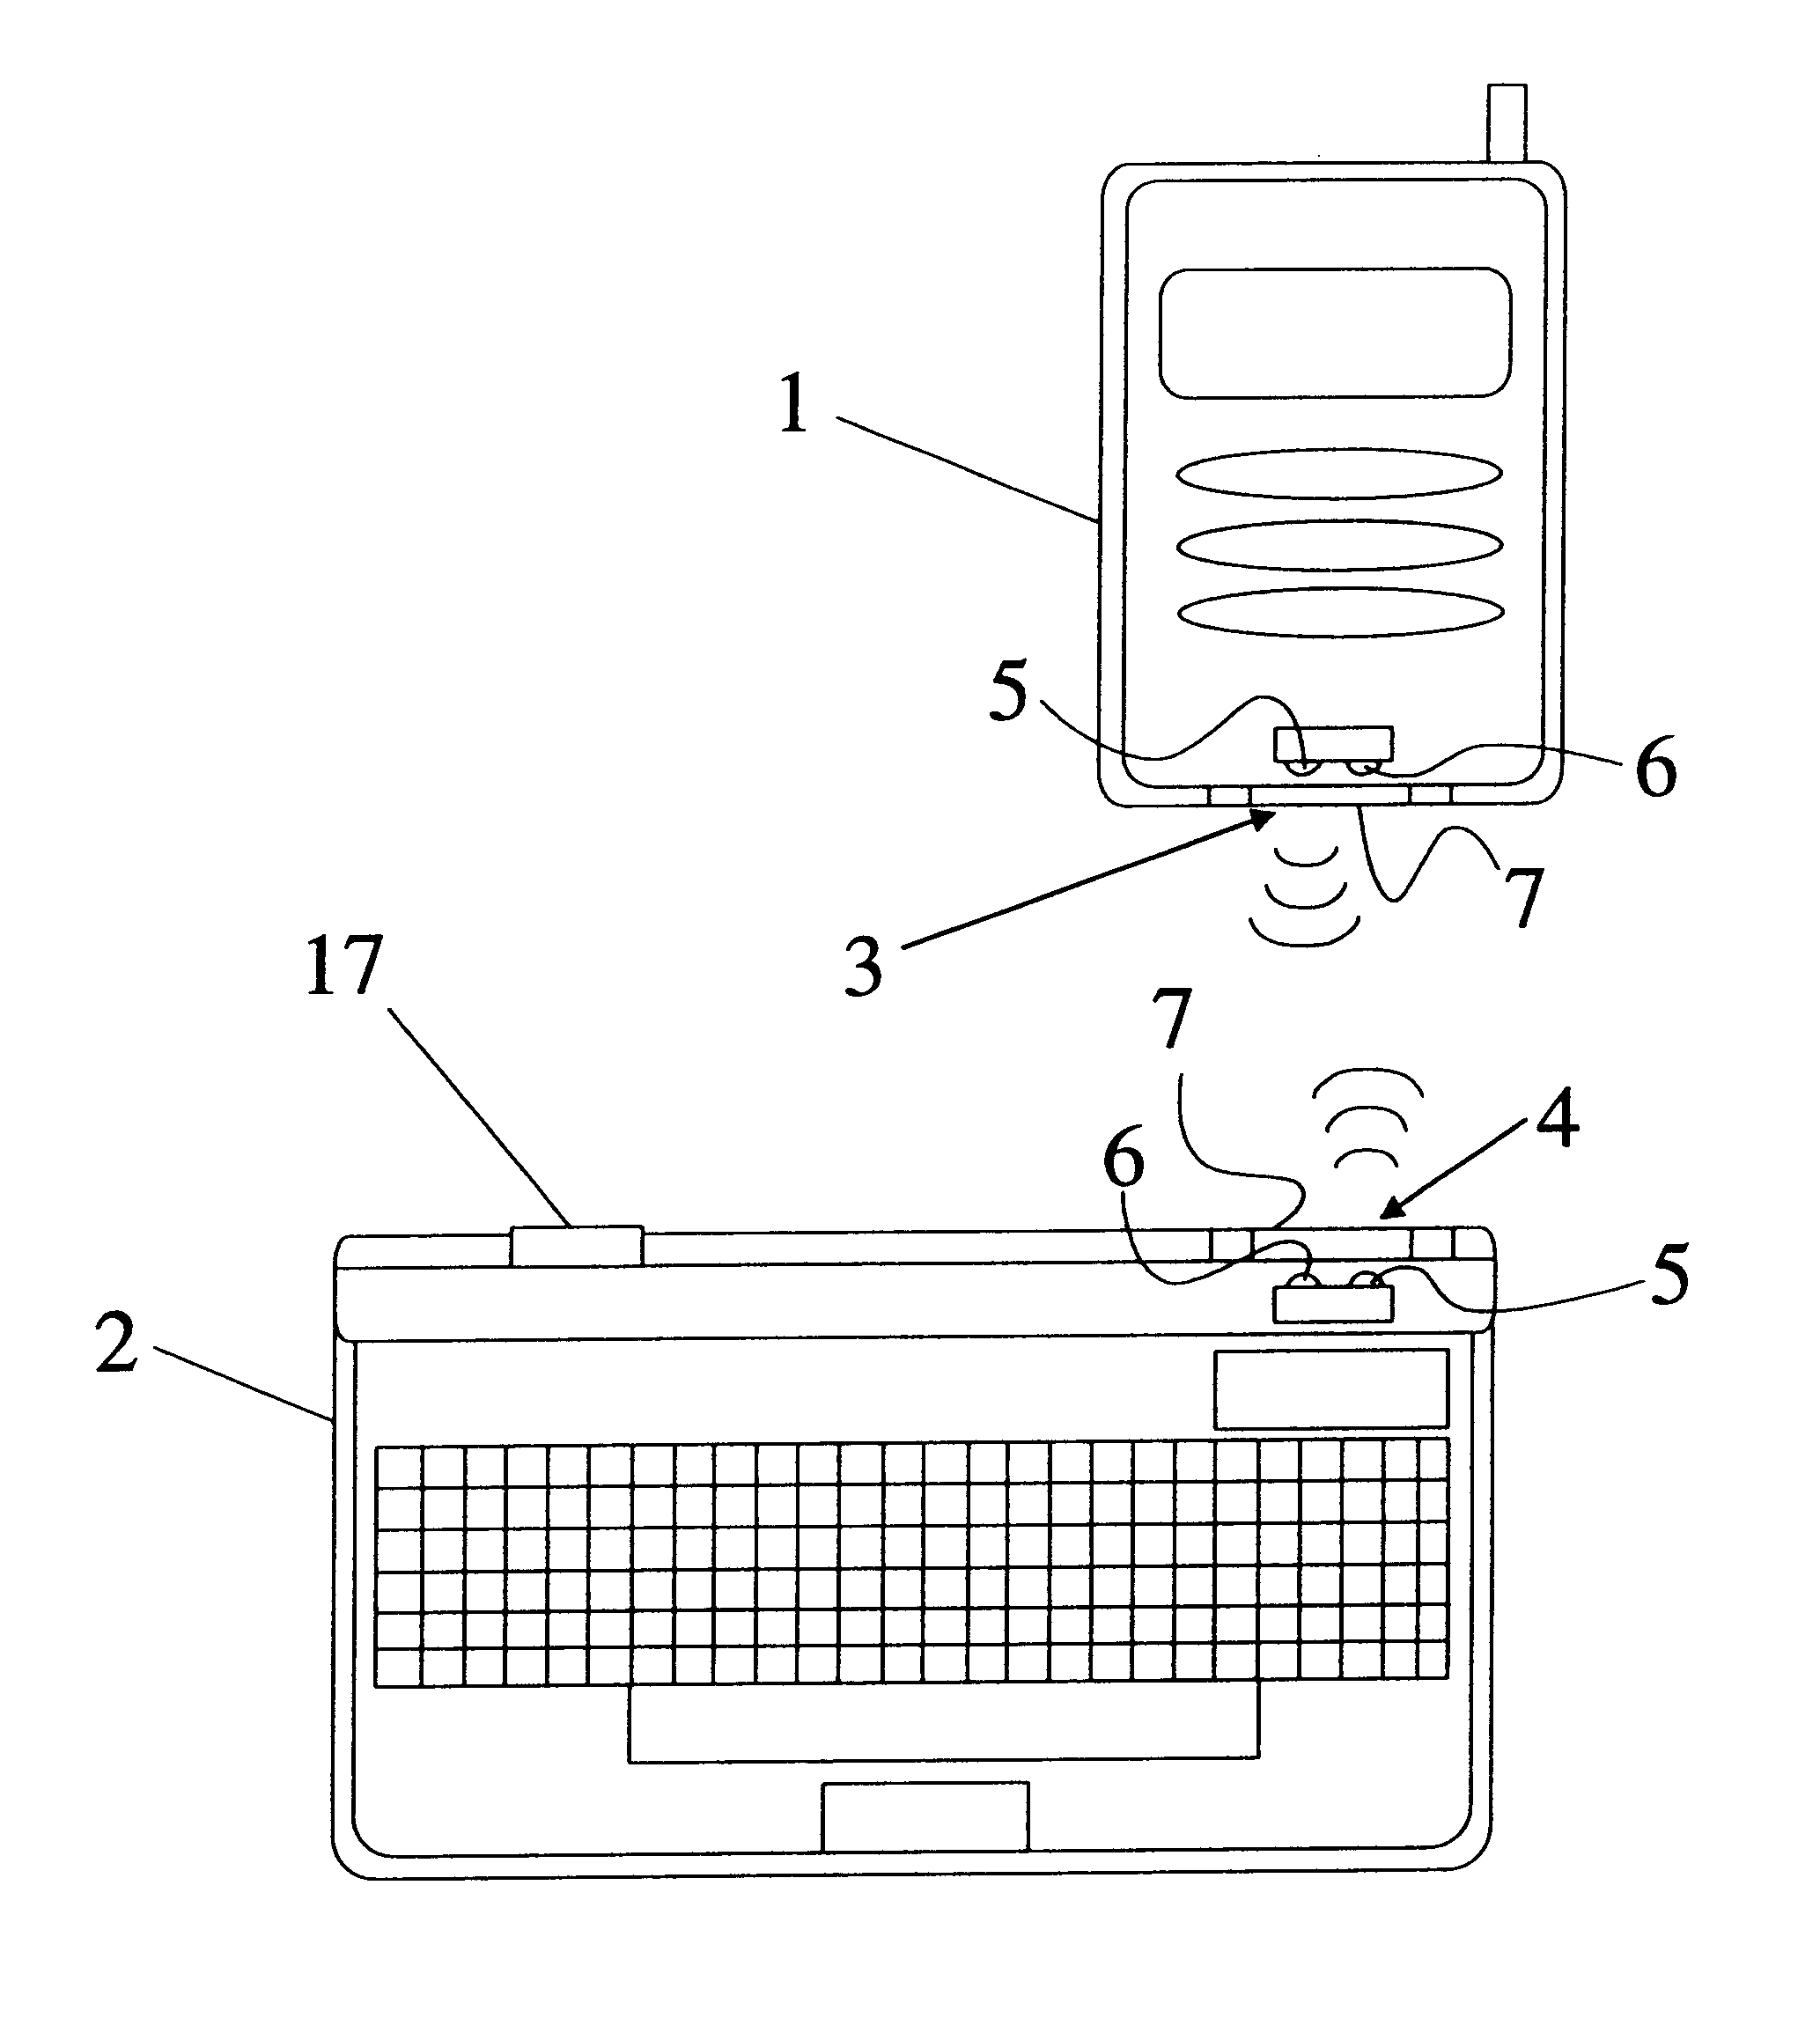 patent us6230214 - portable electronic devices